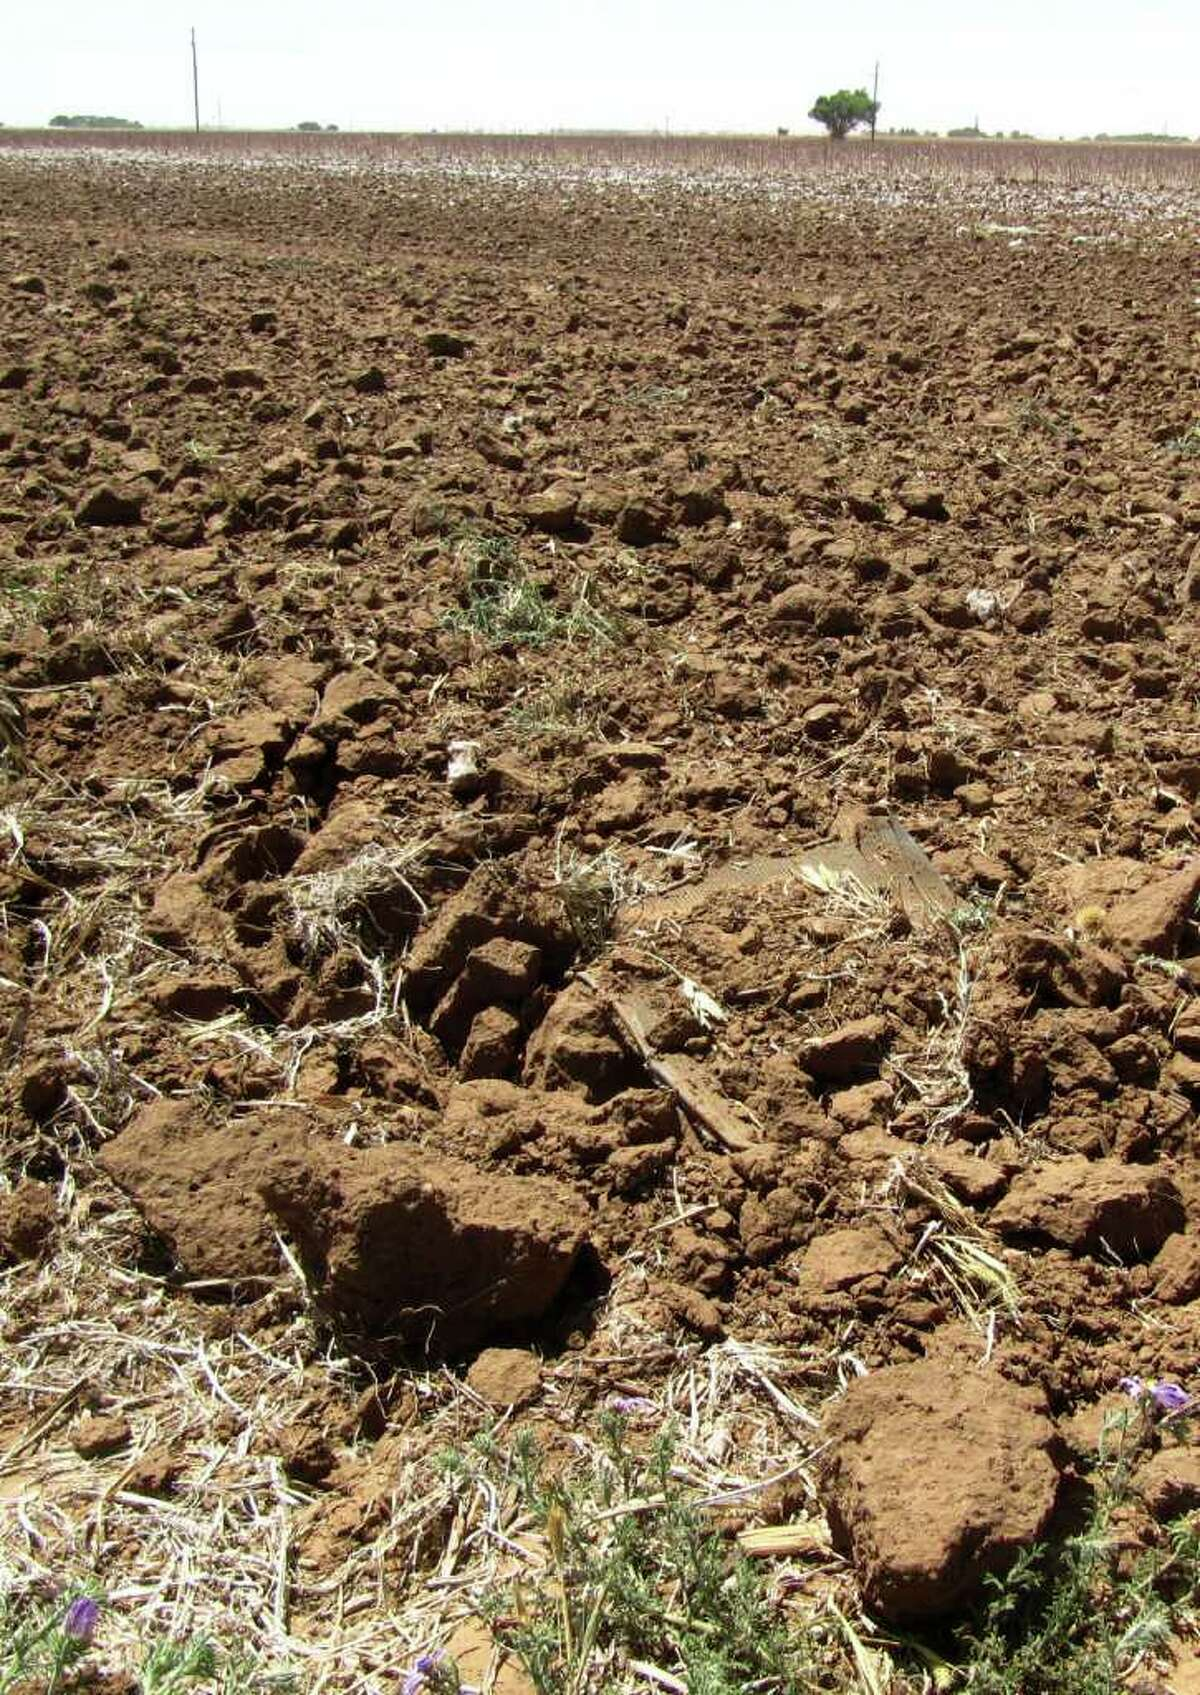 In this May 19, 2011, photo are clumps of dirt in a drought-hardened field near Lubbock, Texas. Meteorologists blame the conditions on La Nina, a cooling of the Pacific waters near the equator. It¿s caused extreme drought in Texas and parts of Oklahoma, Louisiana and New Mexico.